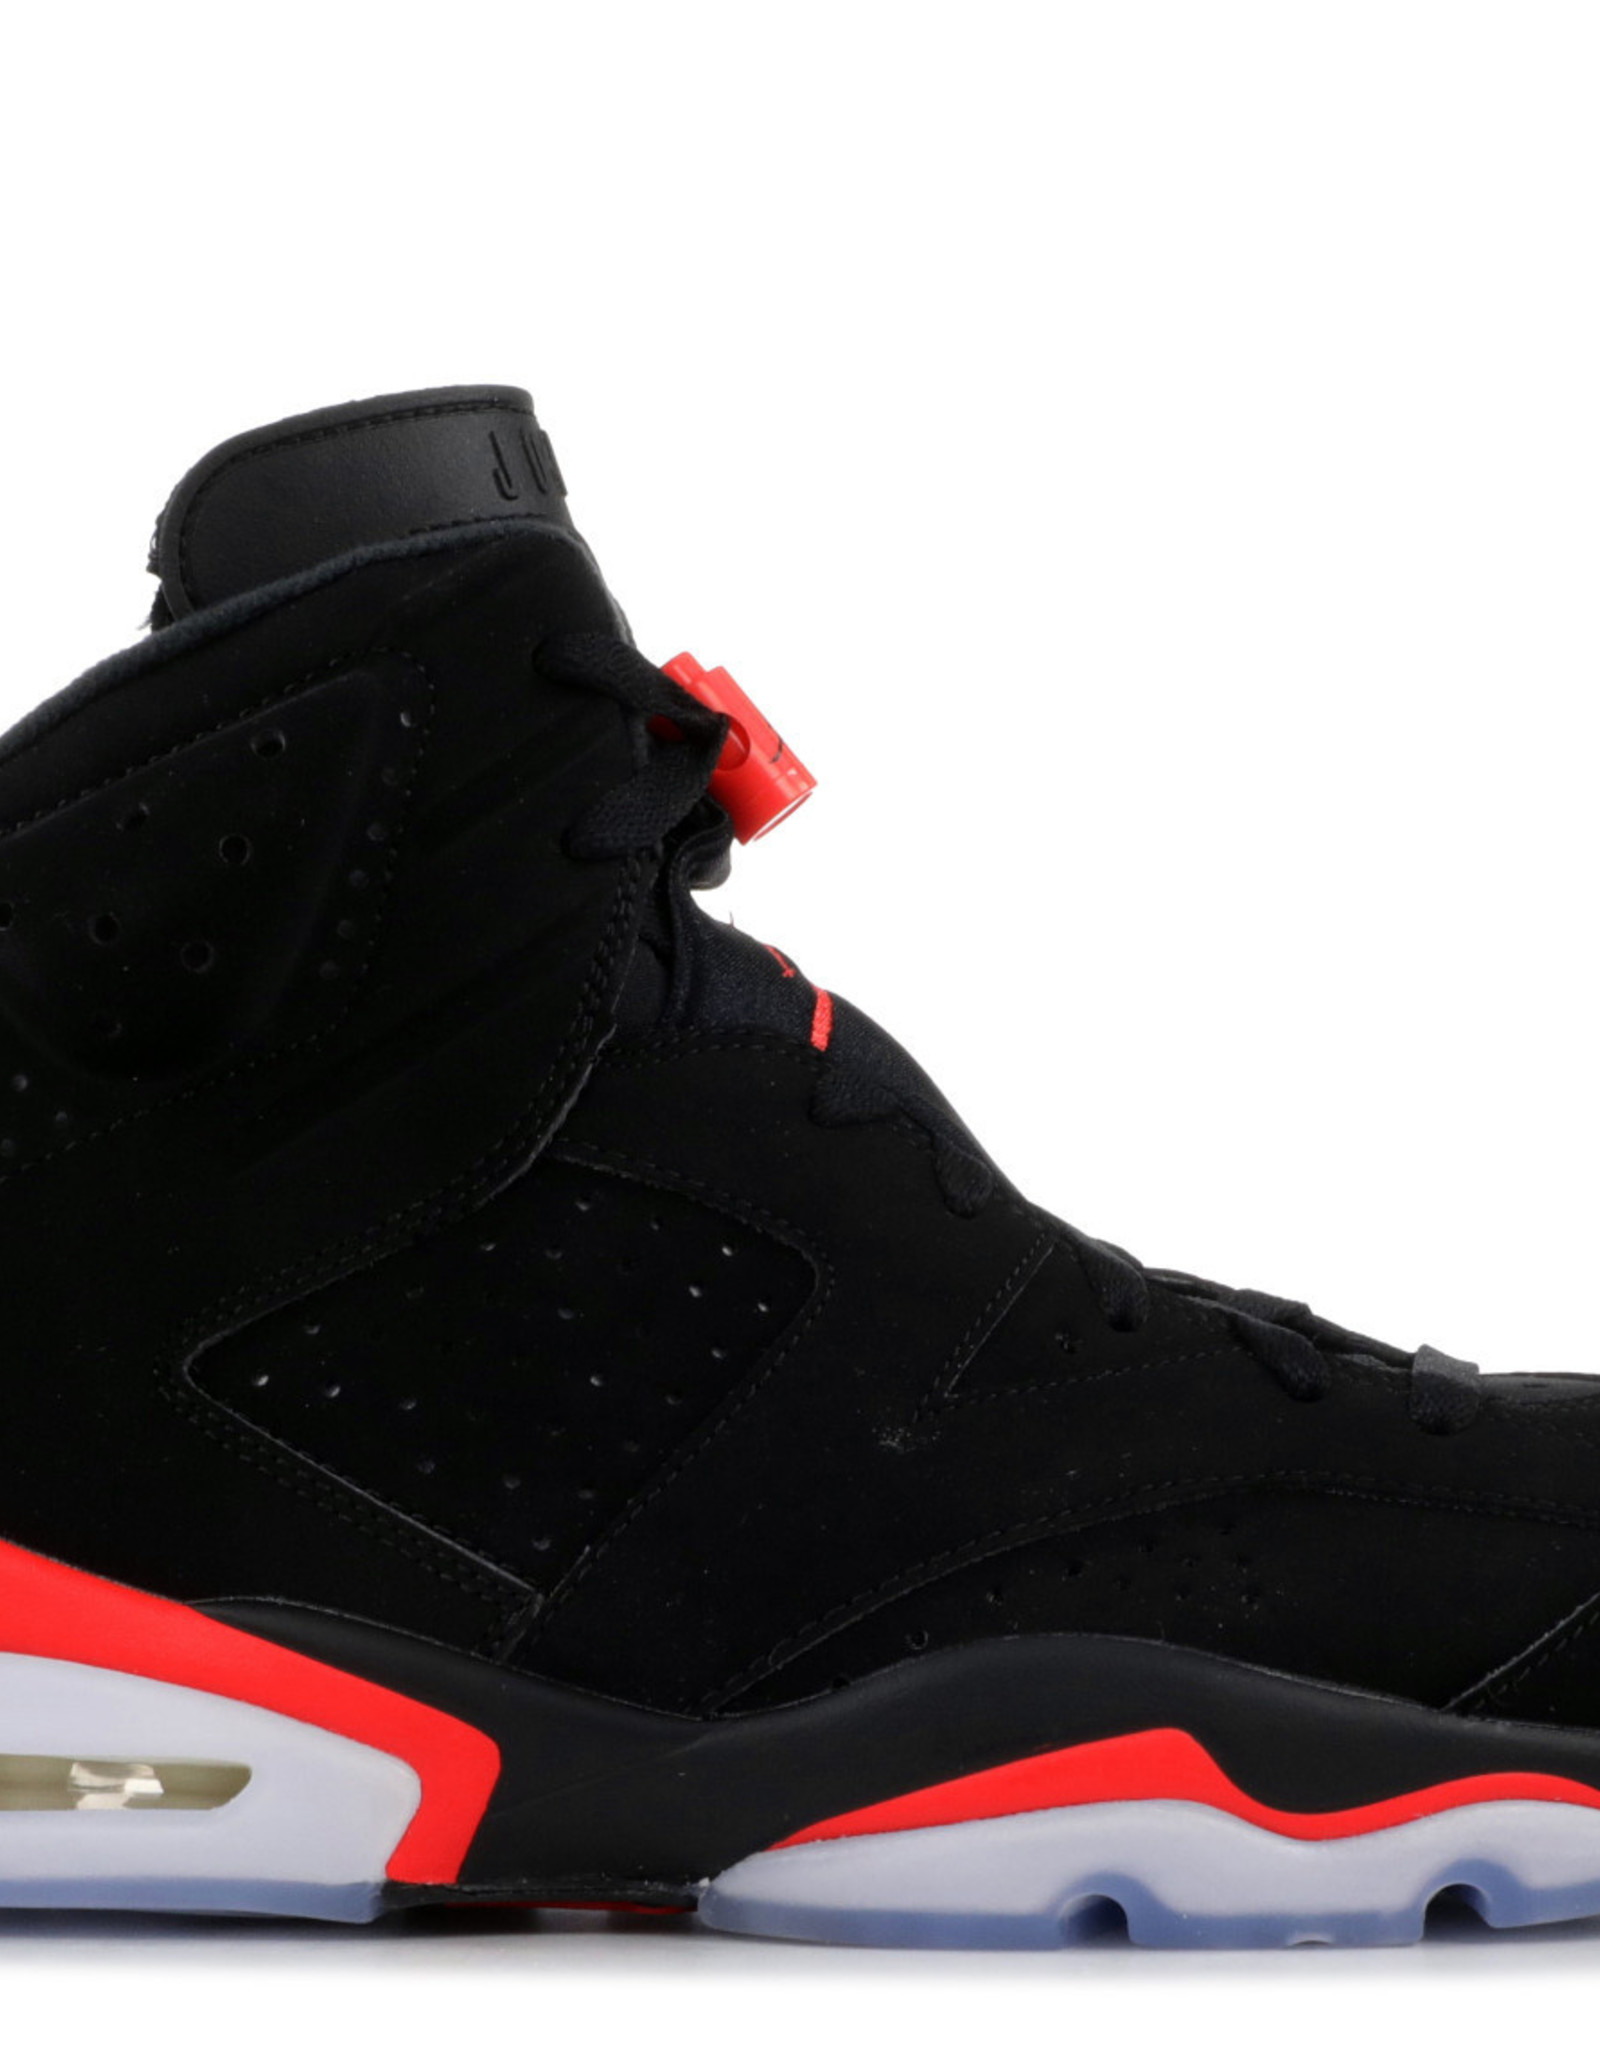 JORDAN Jordan 6 Retro Black Infrared (2019)